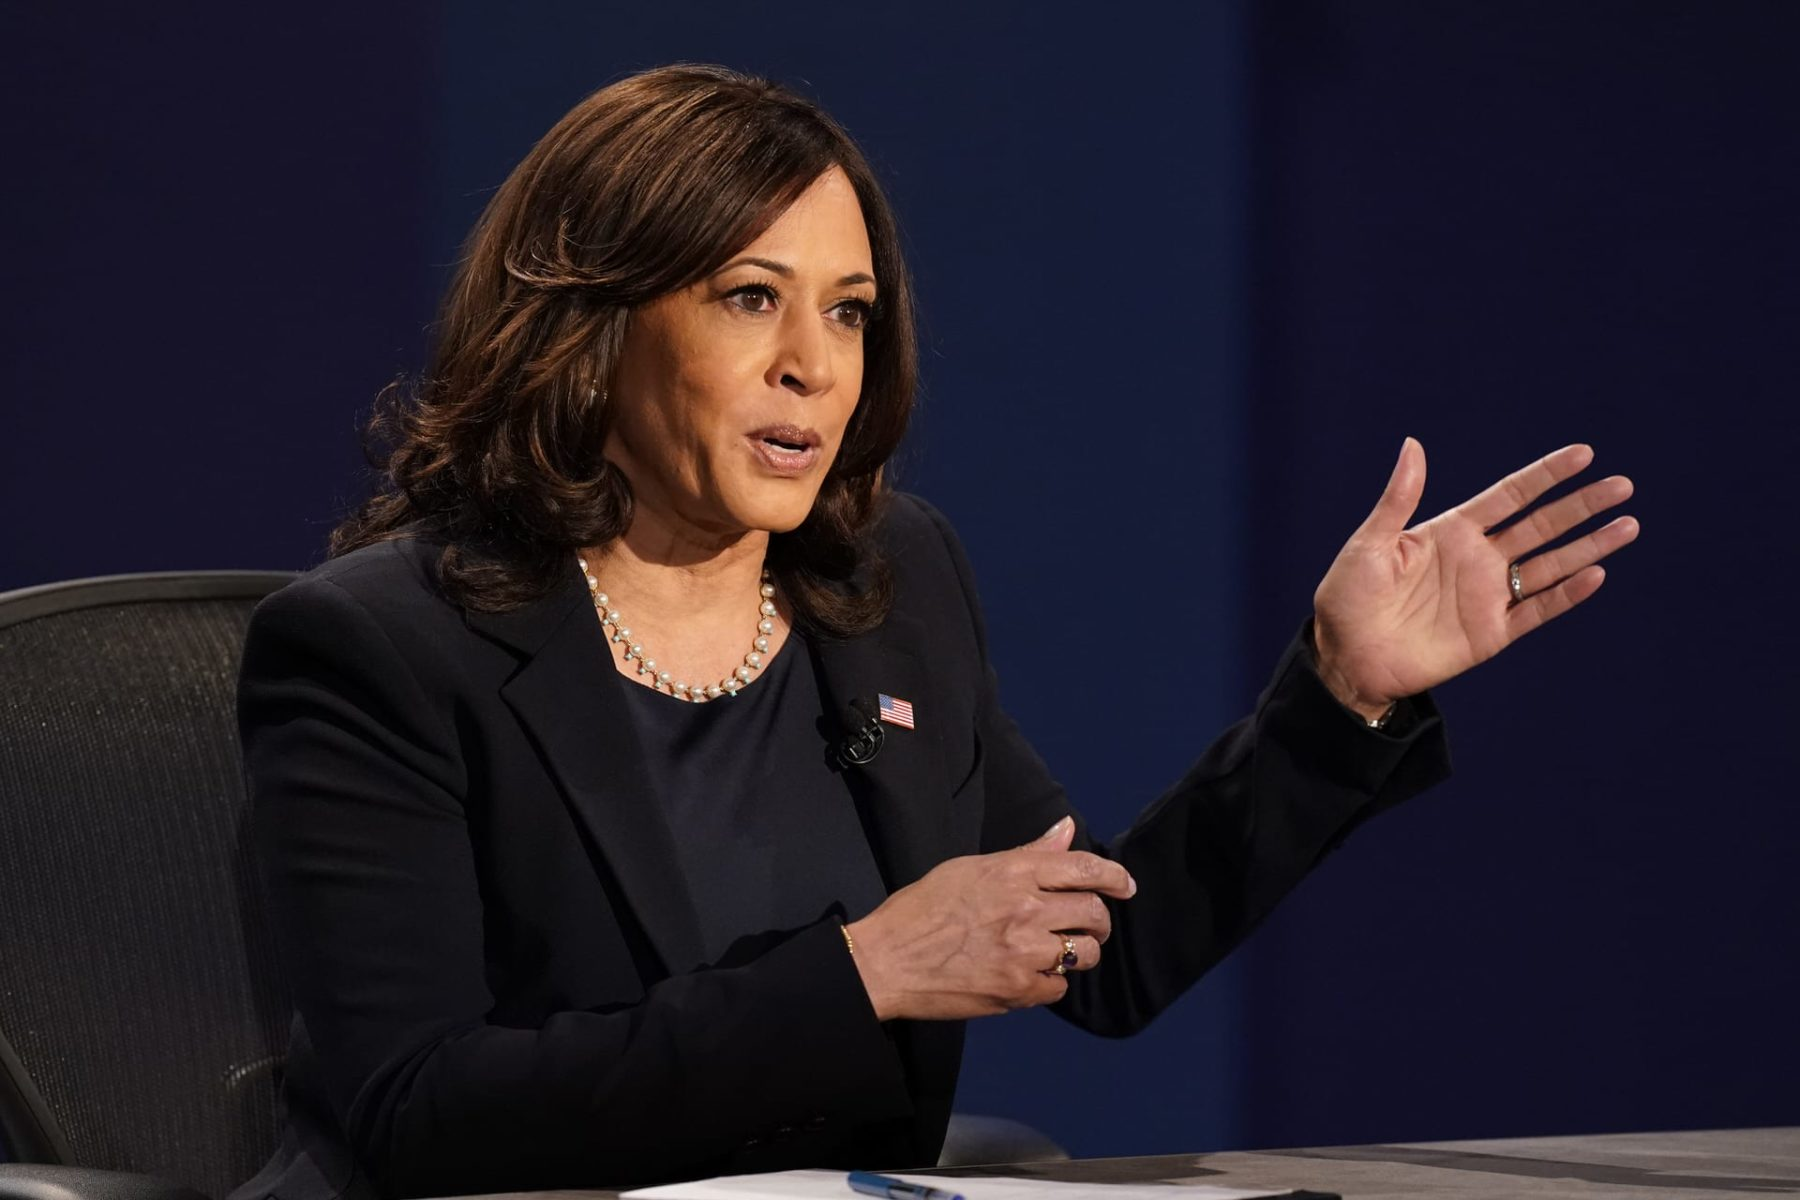 Democratic vice presidential candidate Sen. Kamala Harris, D-Calif., makes a point during the vice presidential debate Vice President Mike Pence Wednesday, Oct. 7, 2020, at Kingsbury Hall on the campus of the University of Utah in Salt Lake City.